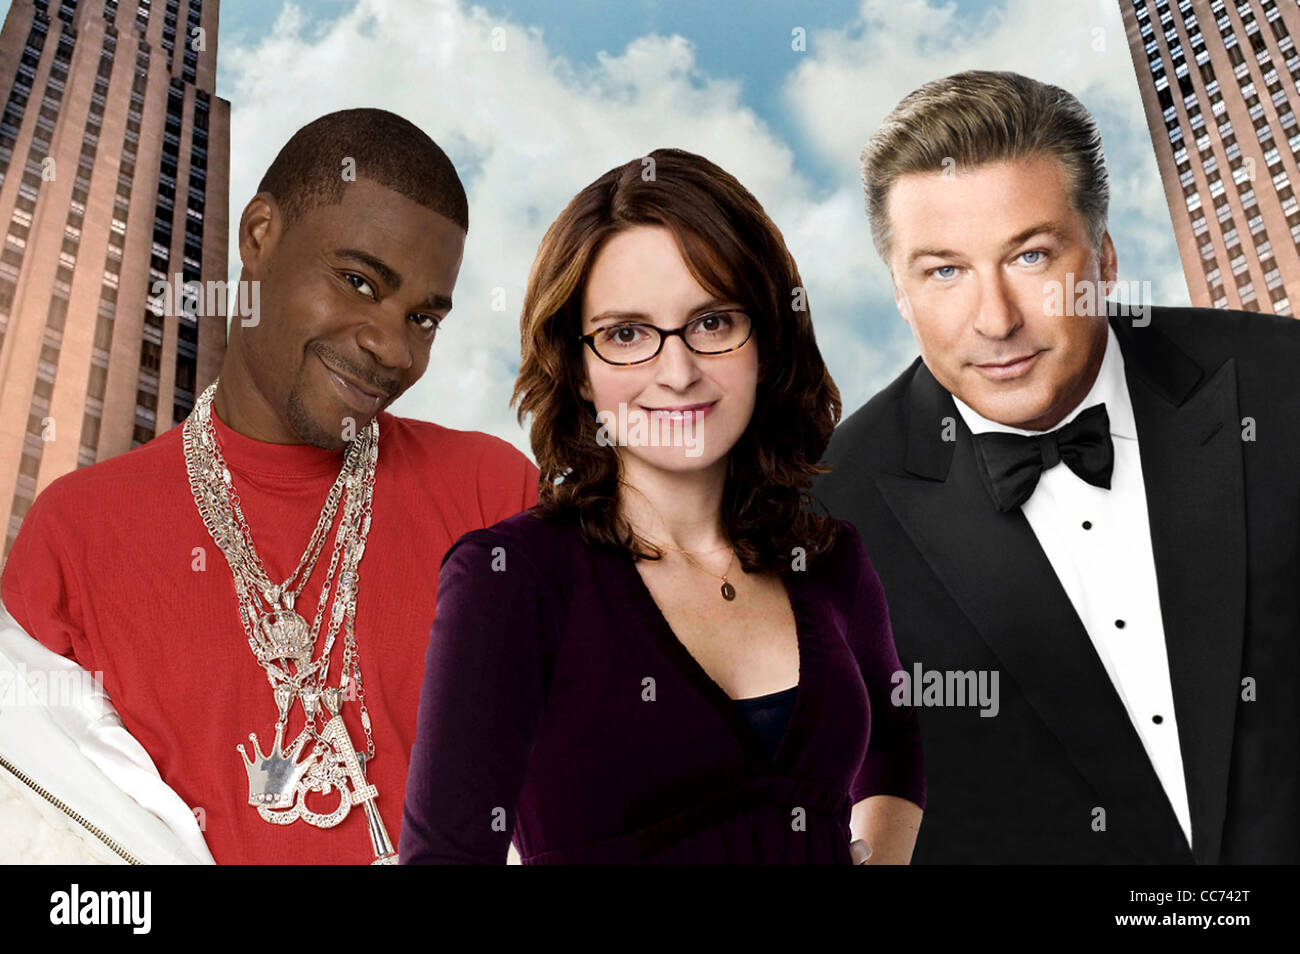 30 ROCK  US Broadway Video series with from left: Tracy Jordan, Tina Fey and Alec Baldwin - Stock Image